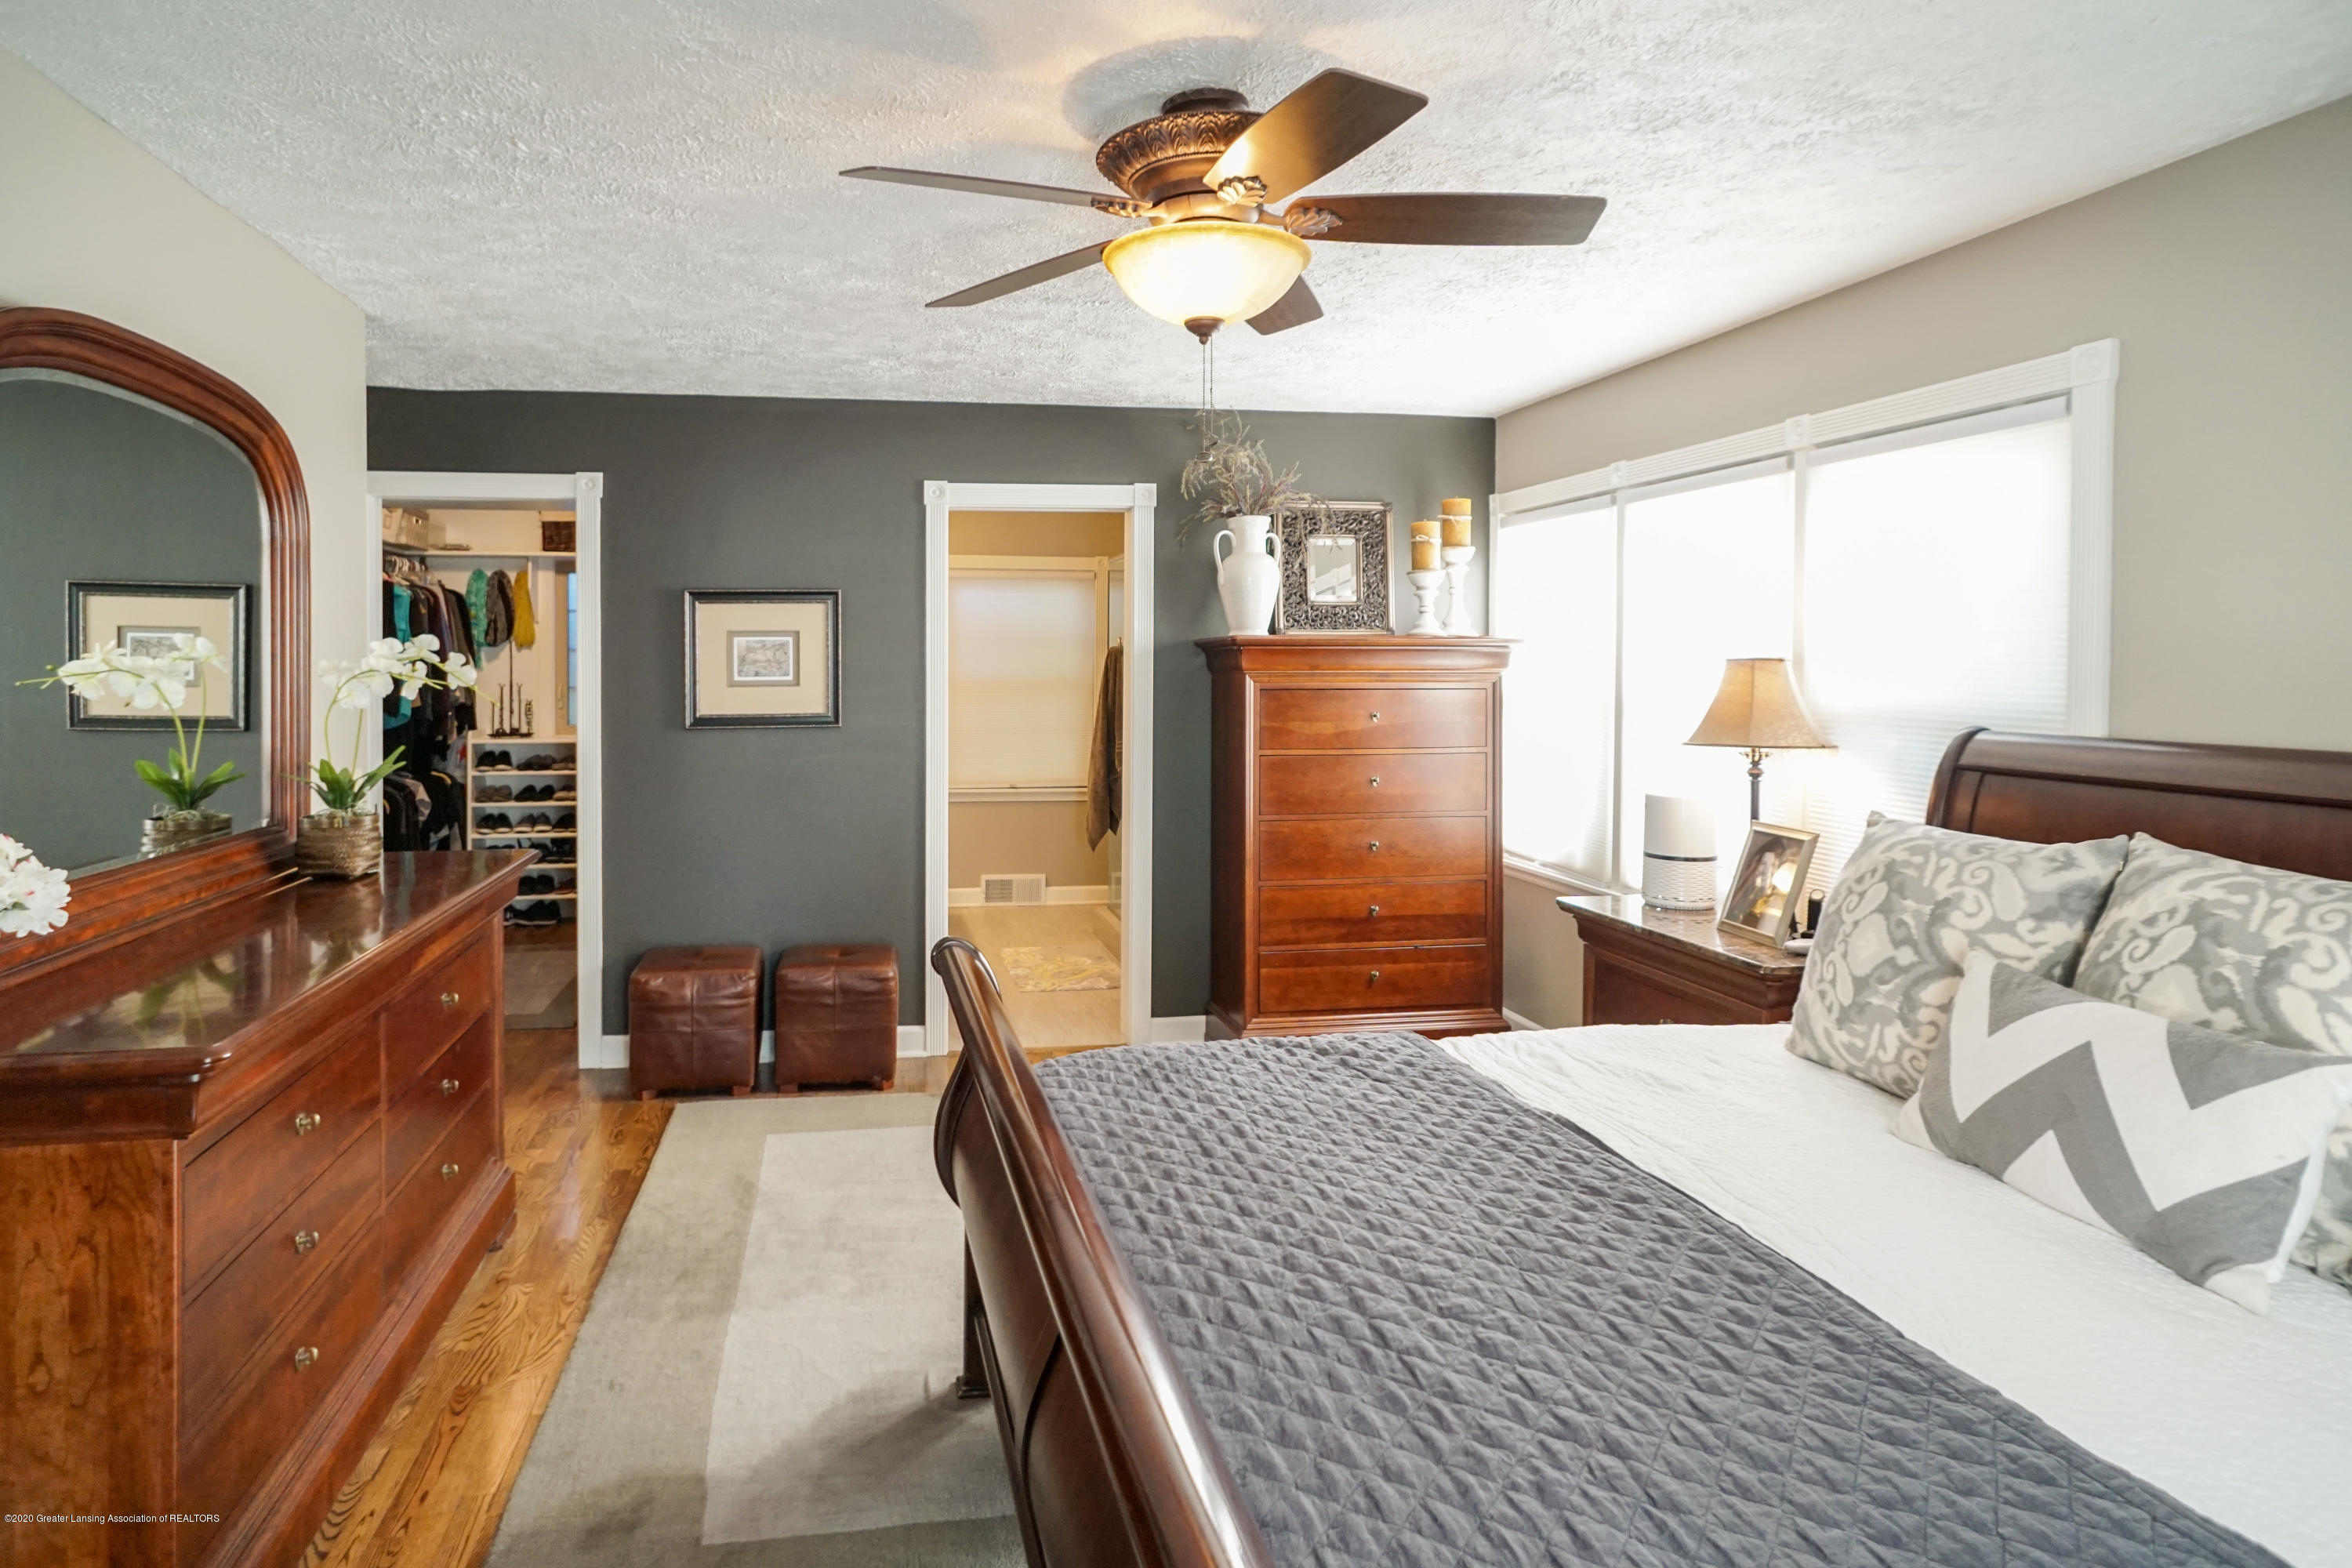 614 Whitehills Dr - Remodeled bathroom and closet - 20